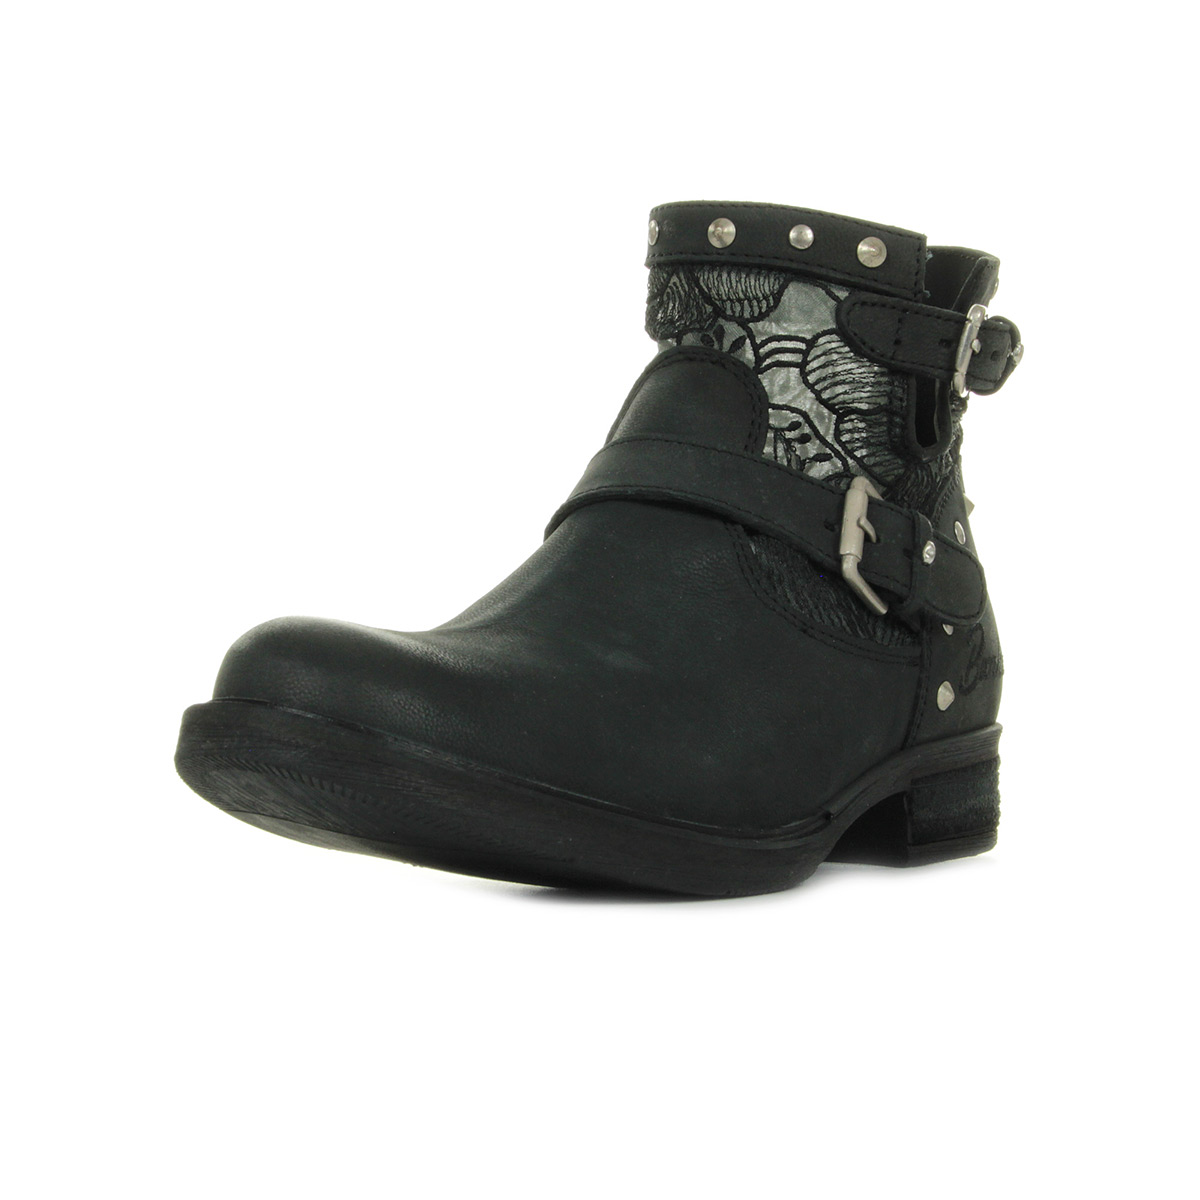 Black/Green Bunker SOLY NF31 Jeans Chaussures Under Armour Swift grises femme  6 W US cz2ZDDA